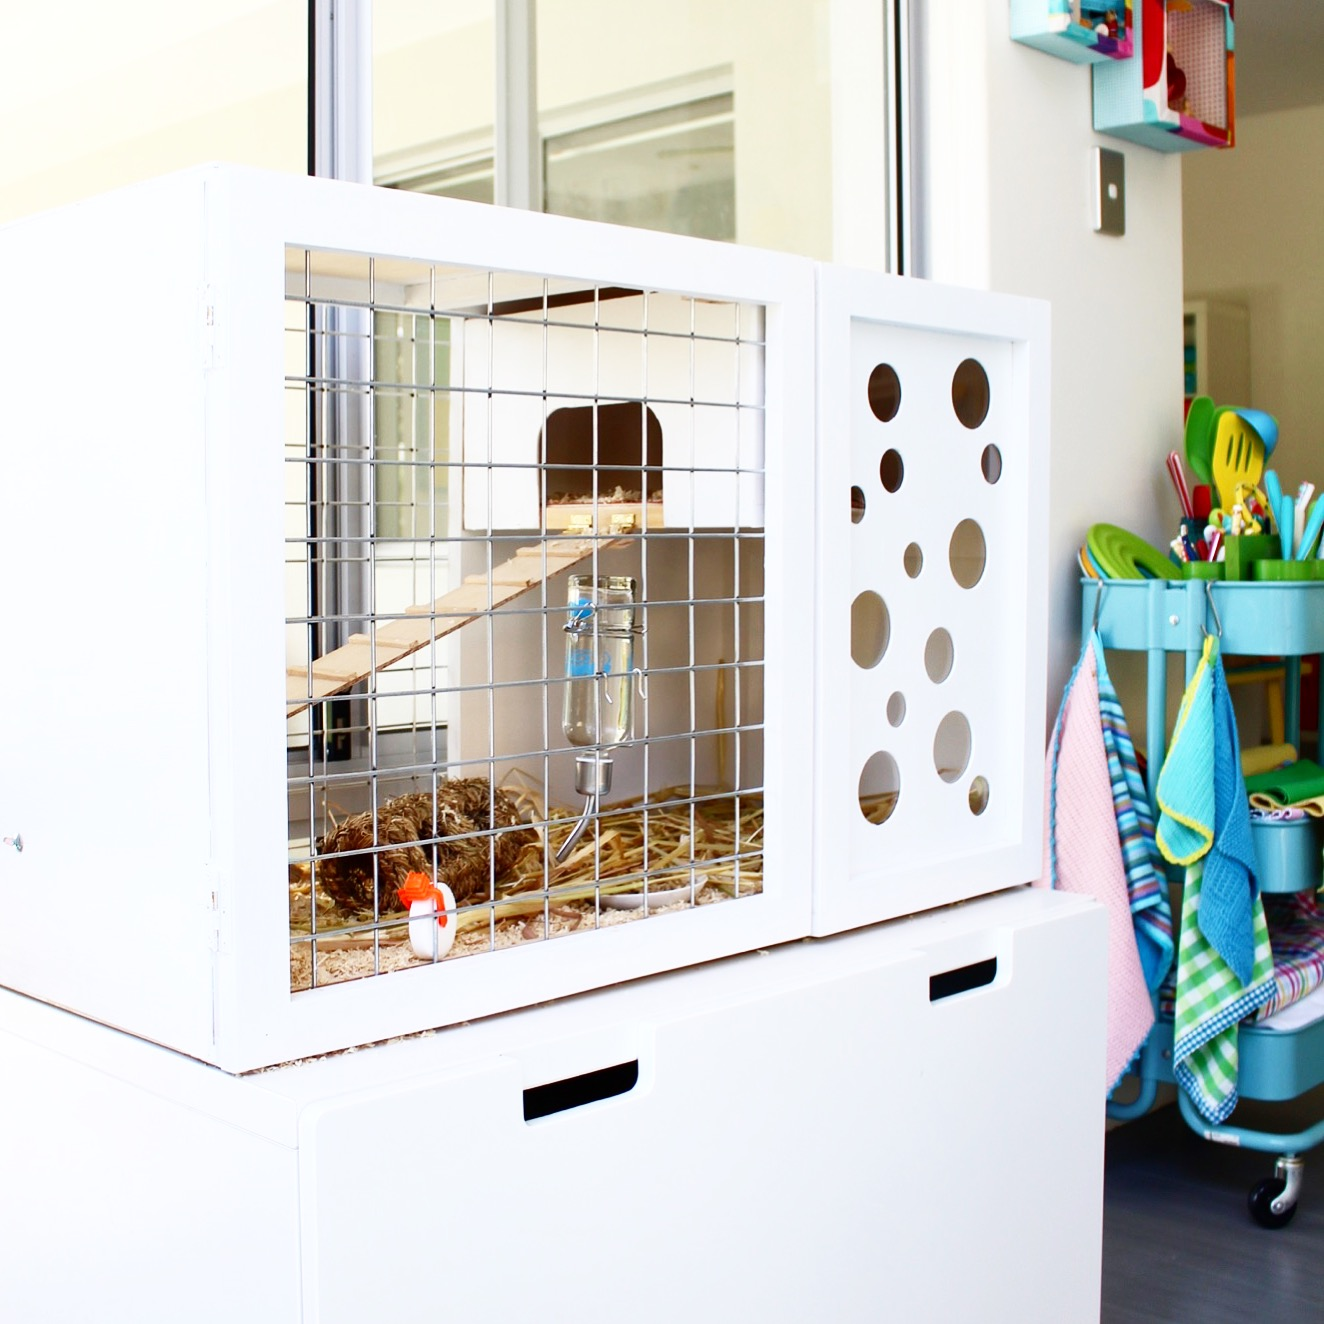 Cool guinea pig or hampster hutch DIY